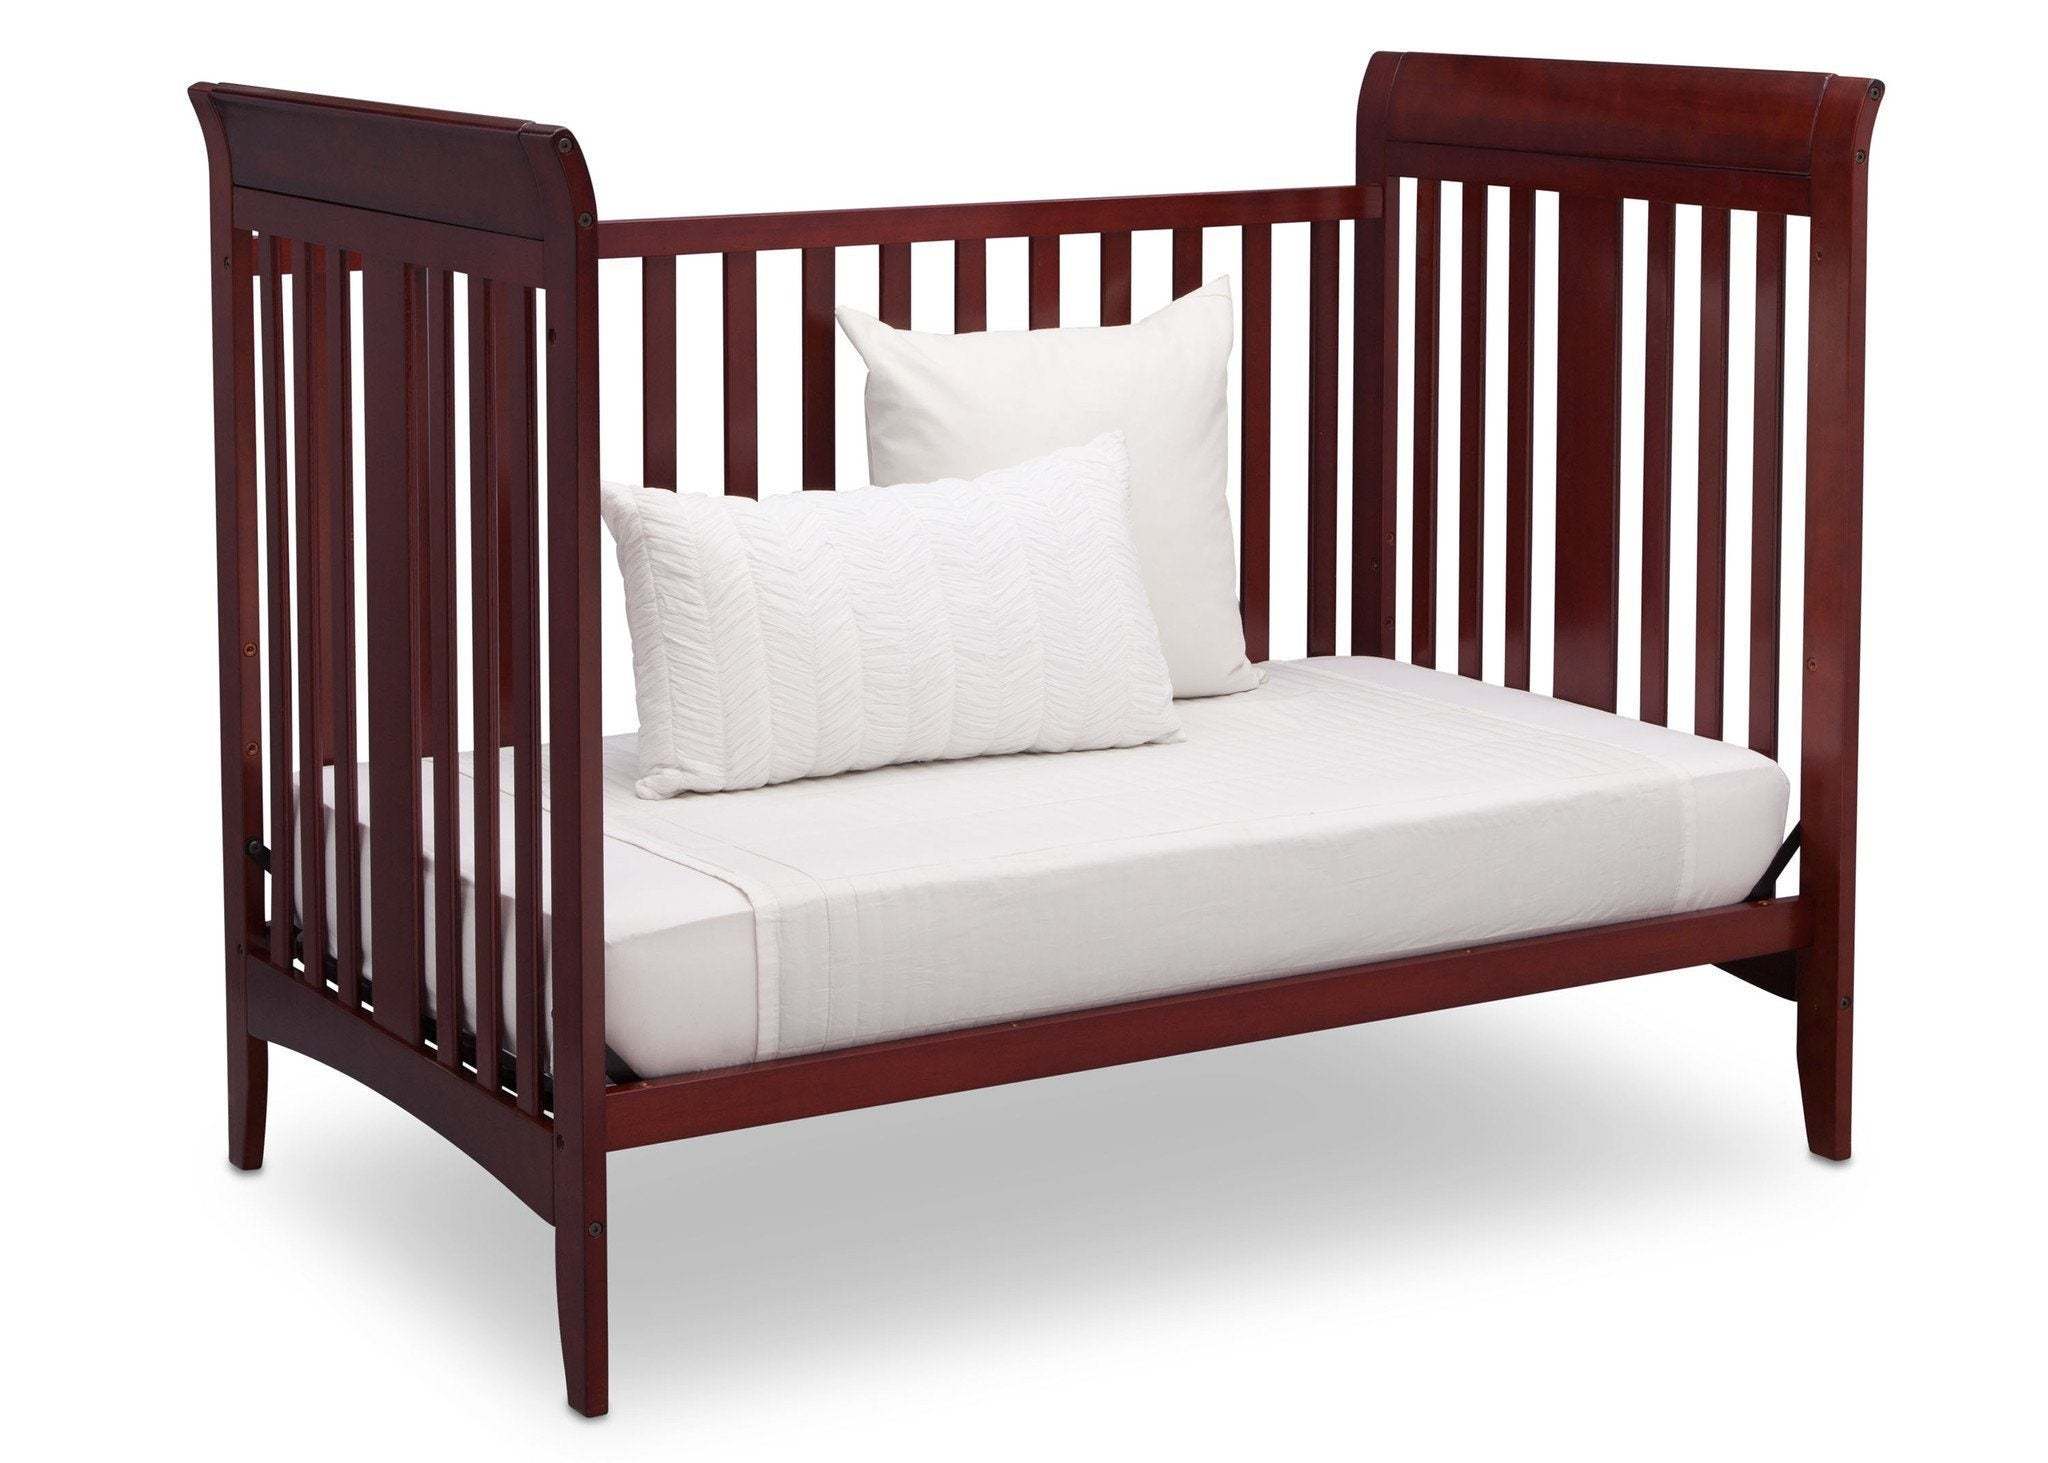 Delta Children Cabernet (648) Parkside 3-in-1-Crib, Day Bed Conversion c4c